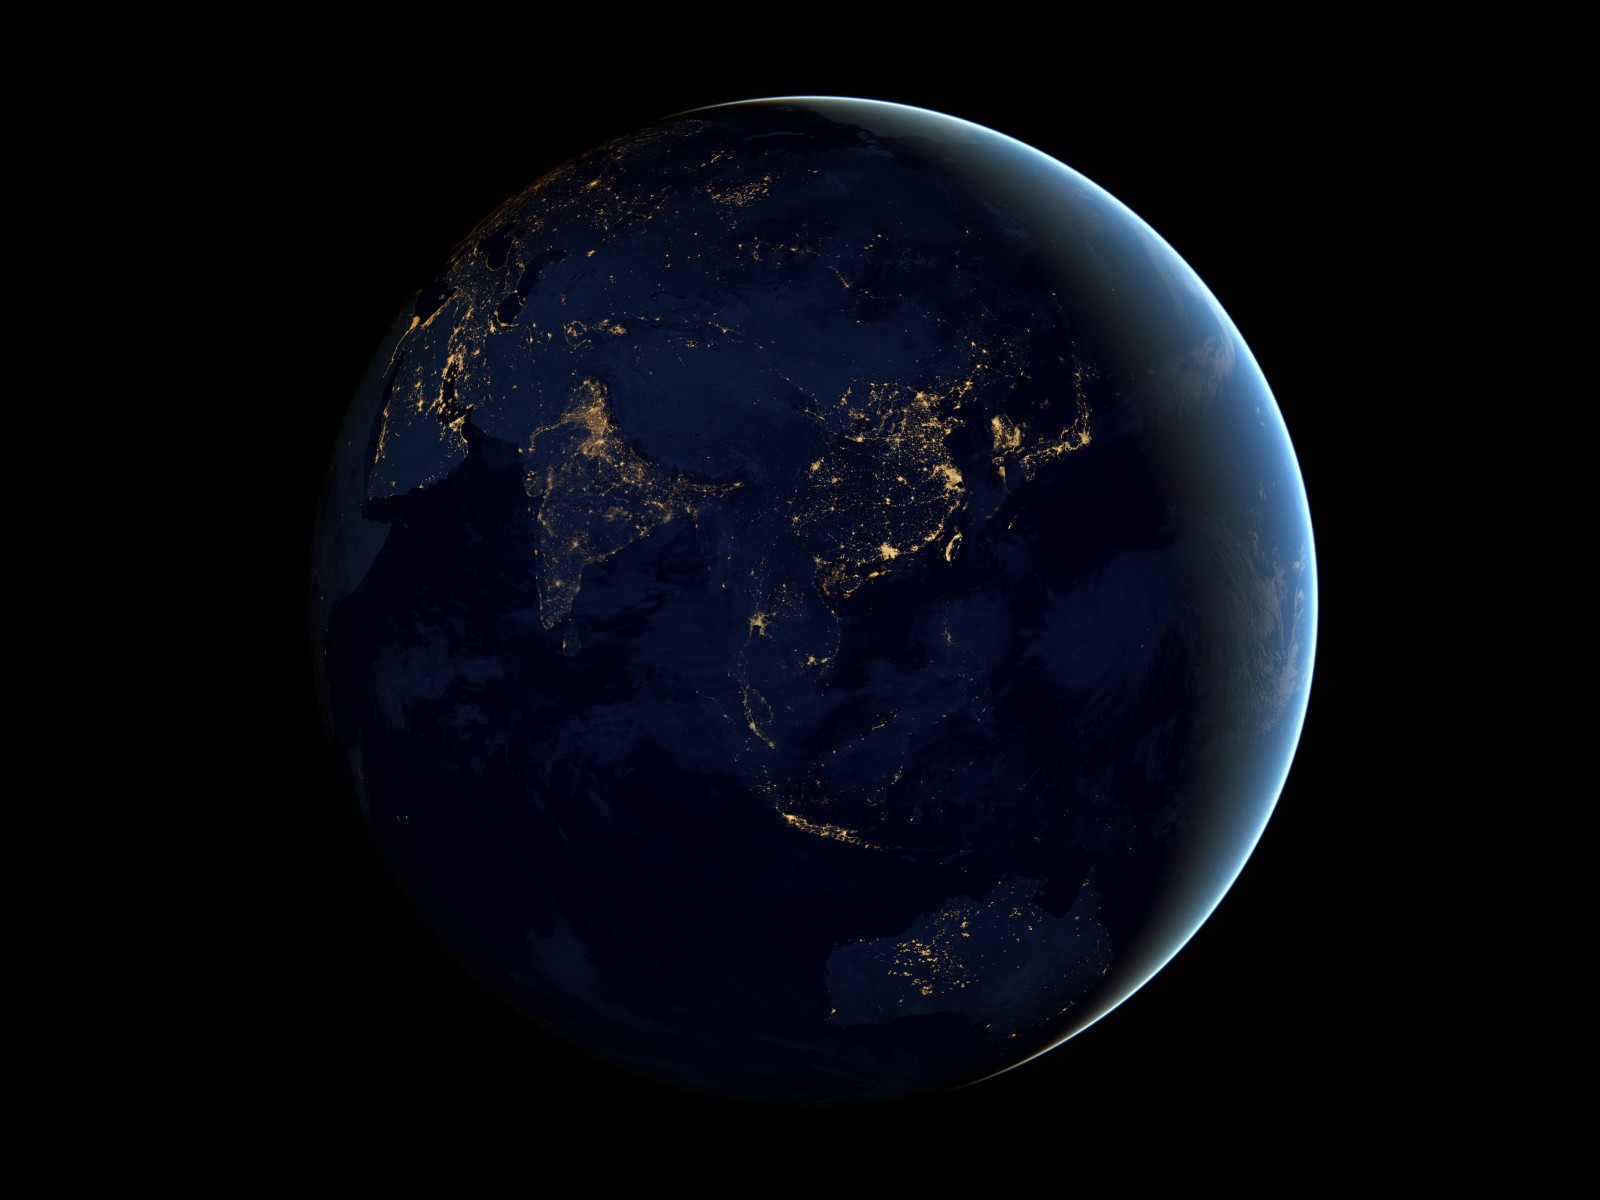 Earth At Night Seen From Space Wallpaper for Desktop 1600x1200